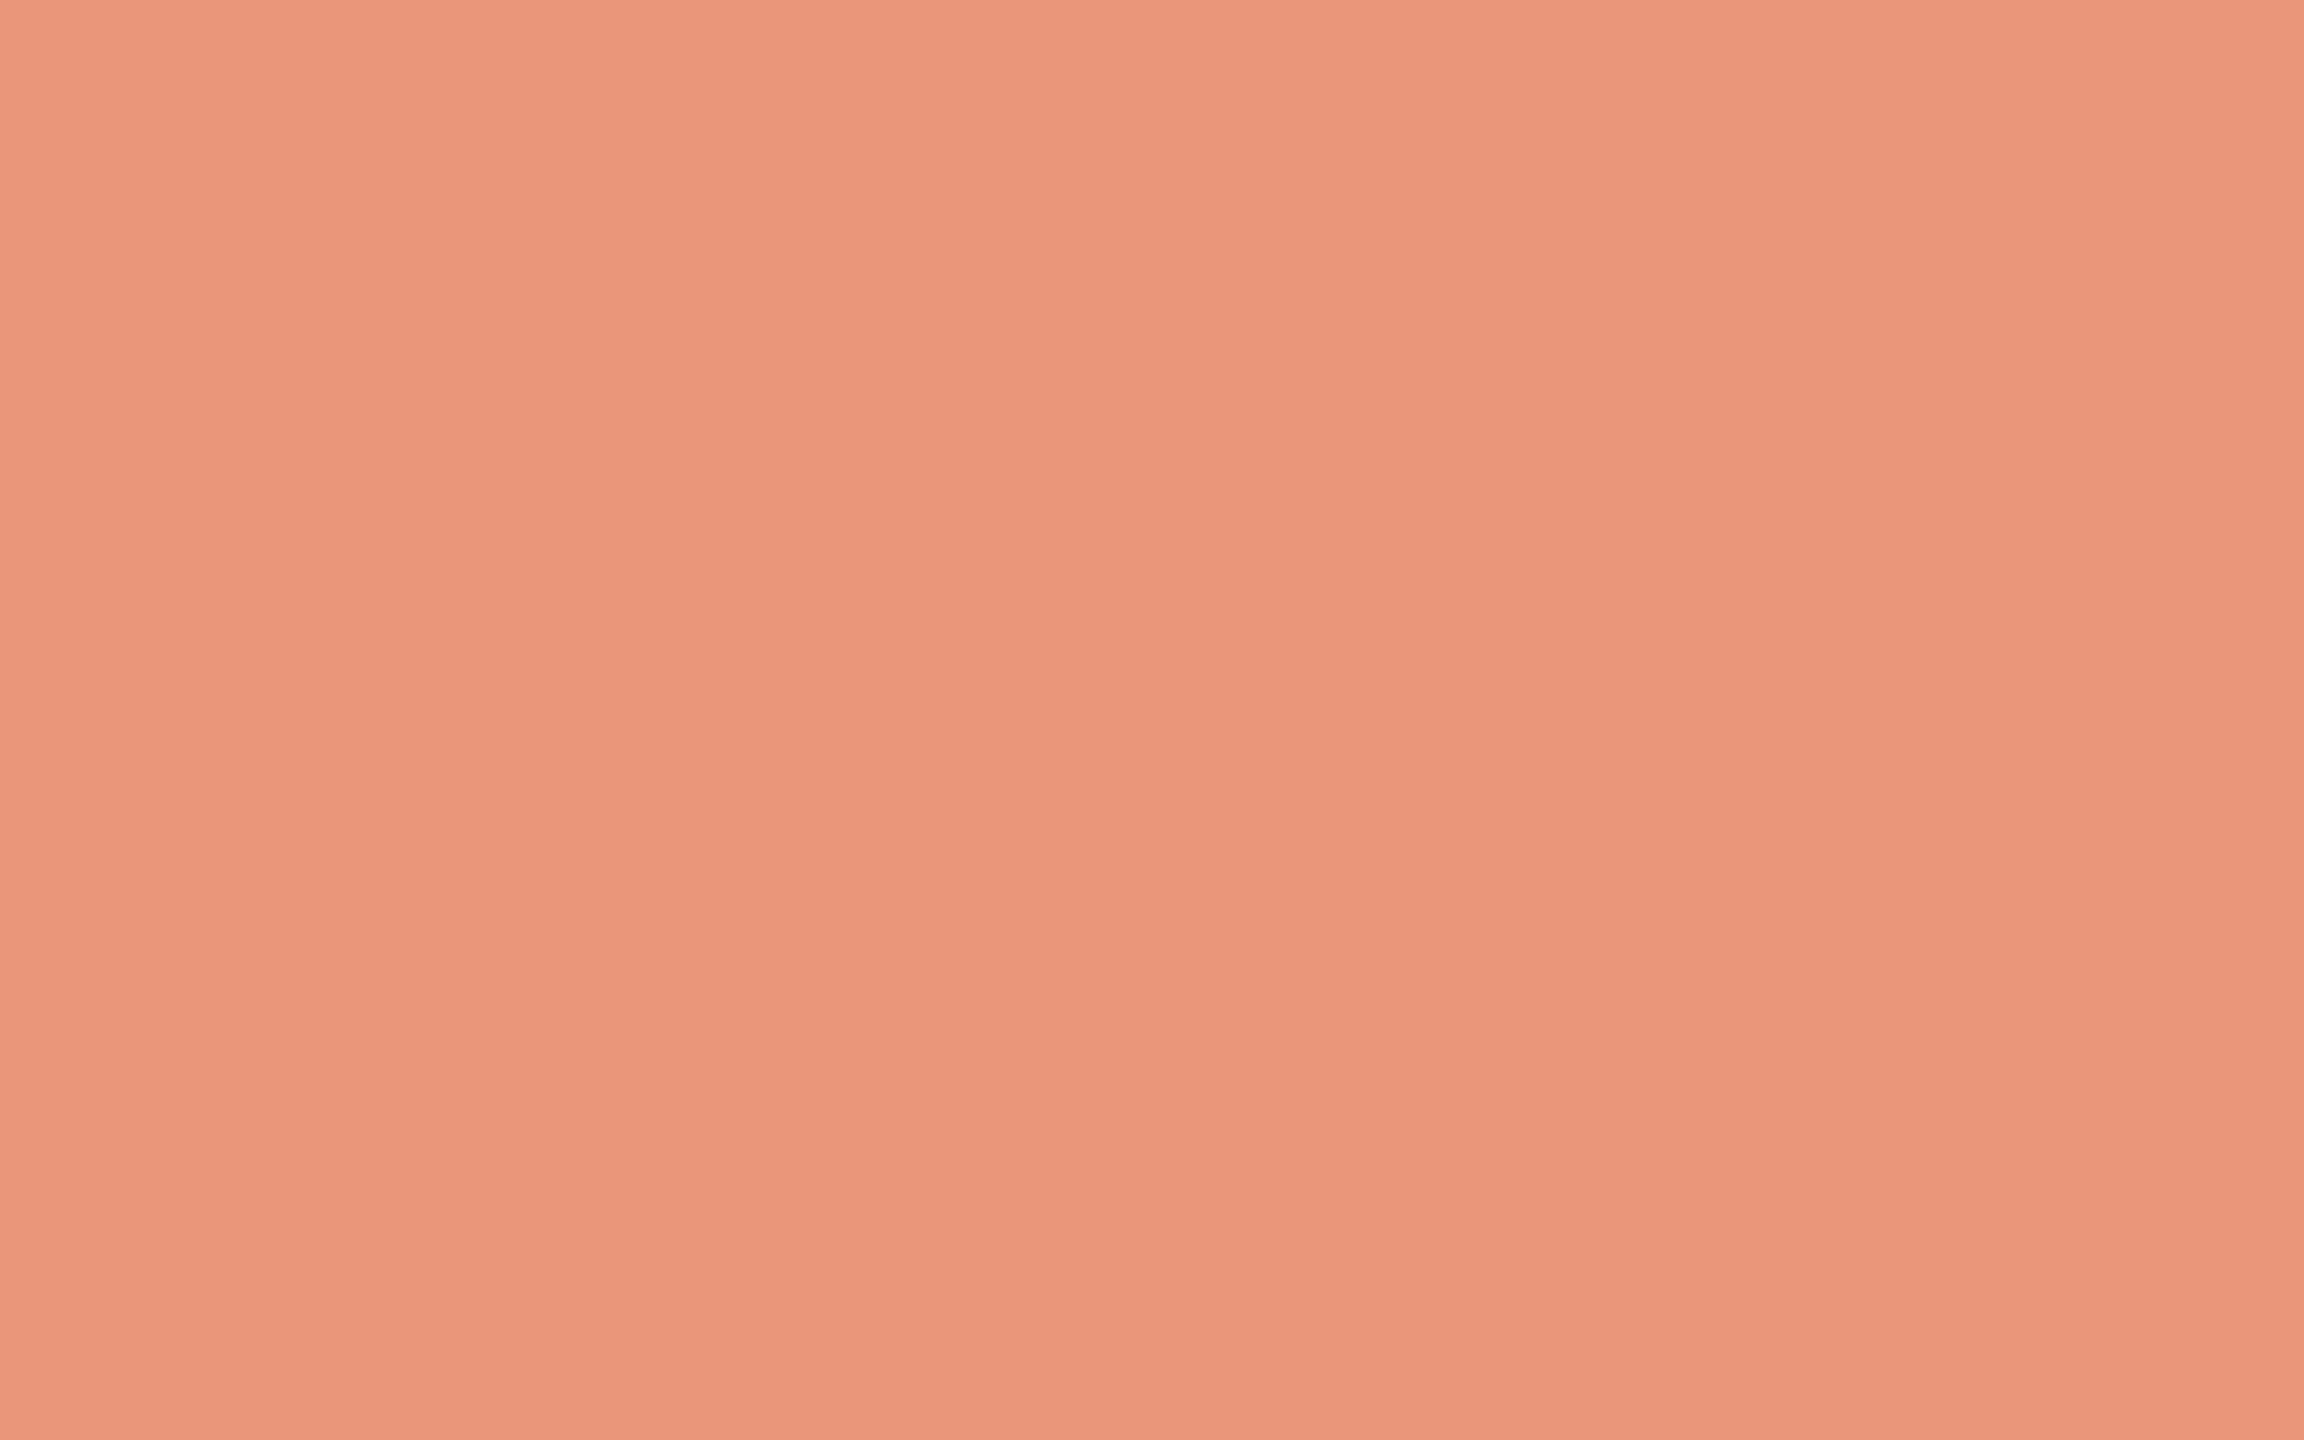 2304x1440 Dark Salmon Solid Color Background